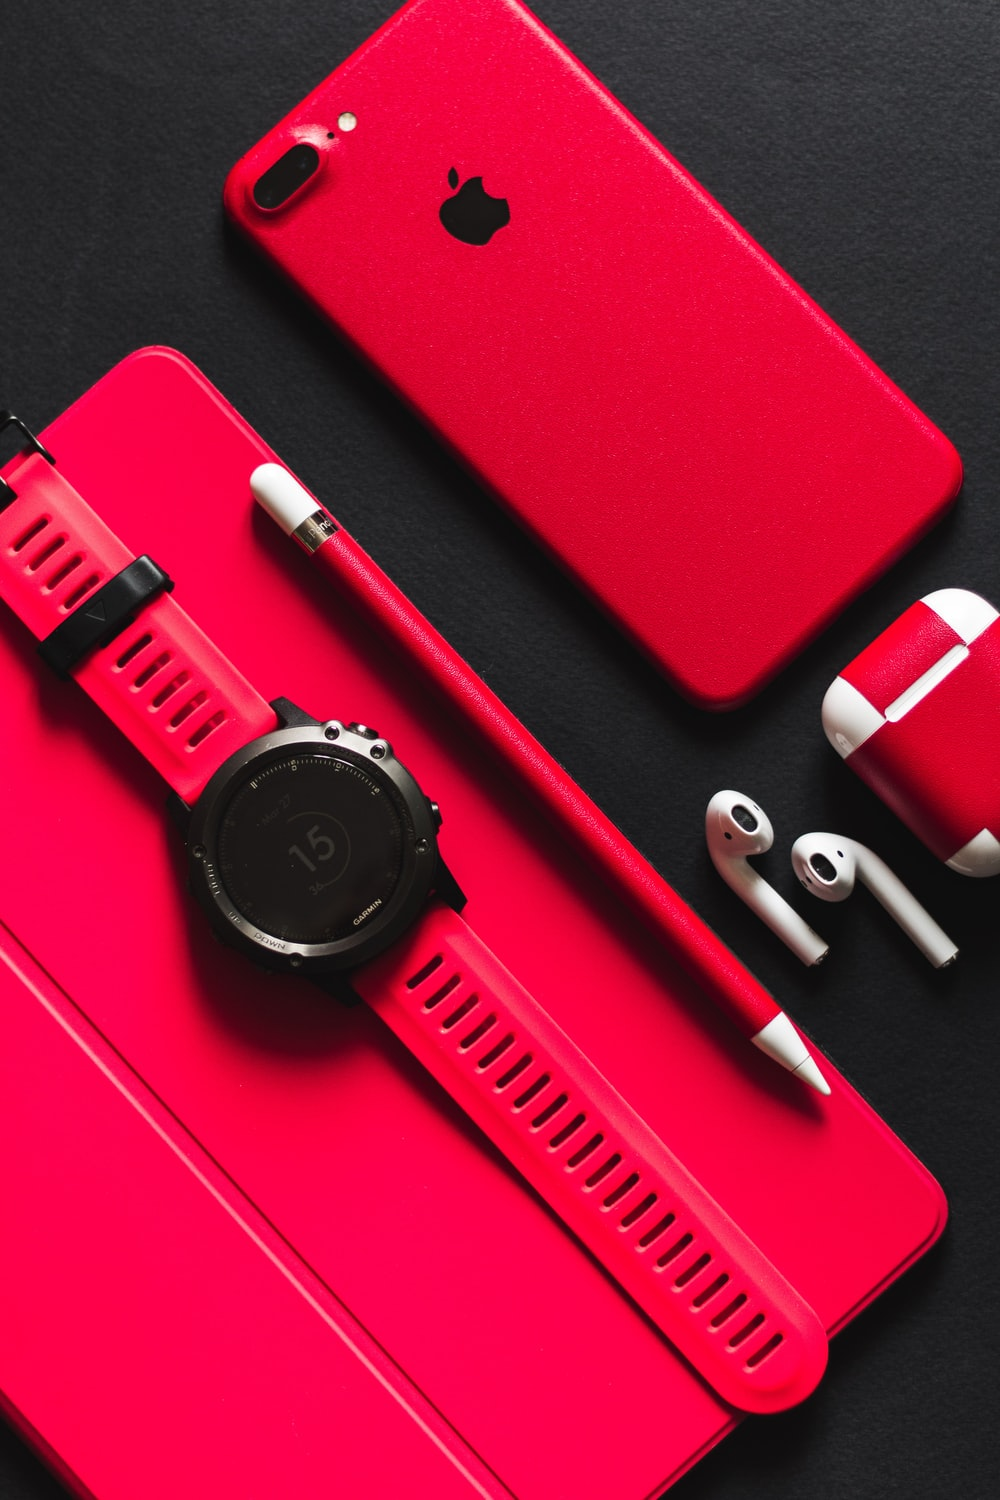 smartwatch, stylus, AirPods, and product red iPhone 7 on black surface